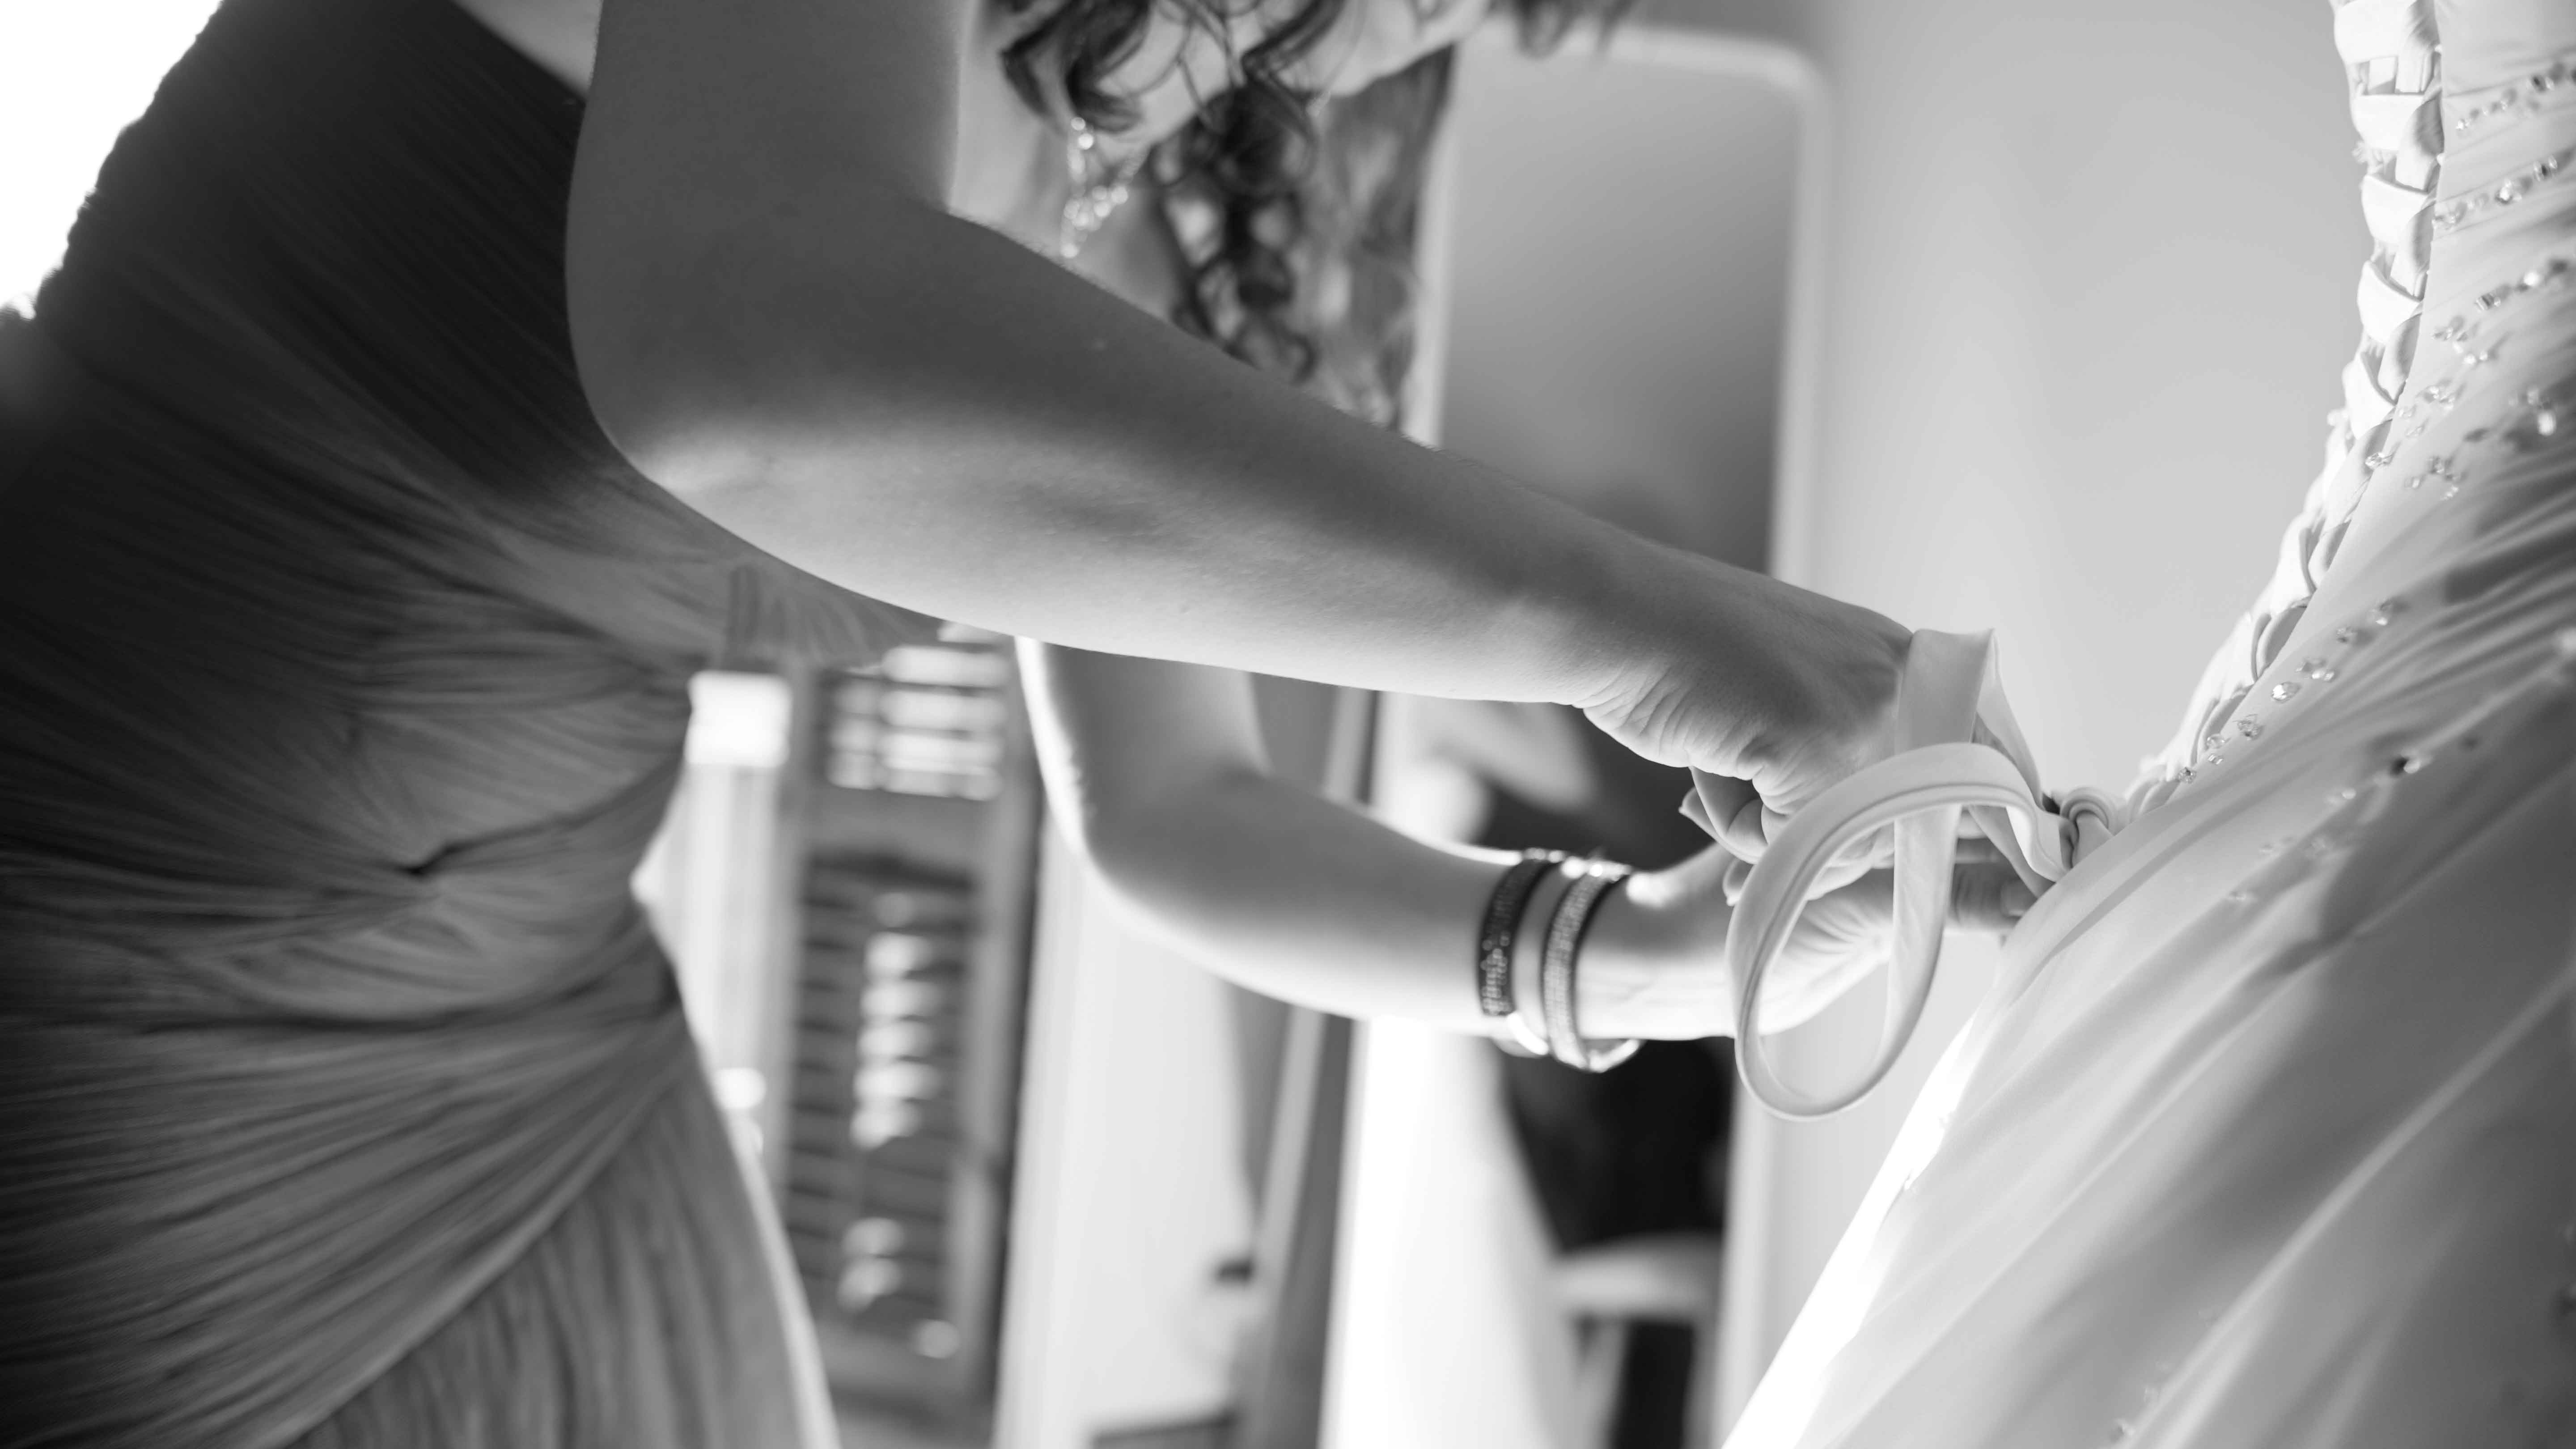 casament-preparatius-nuvia-vestit-